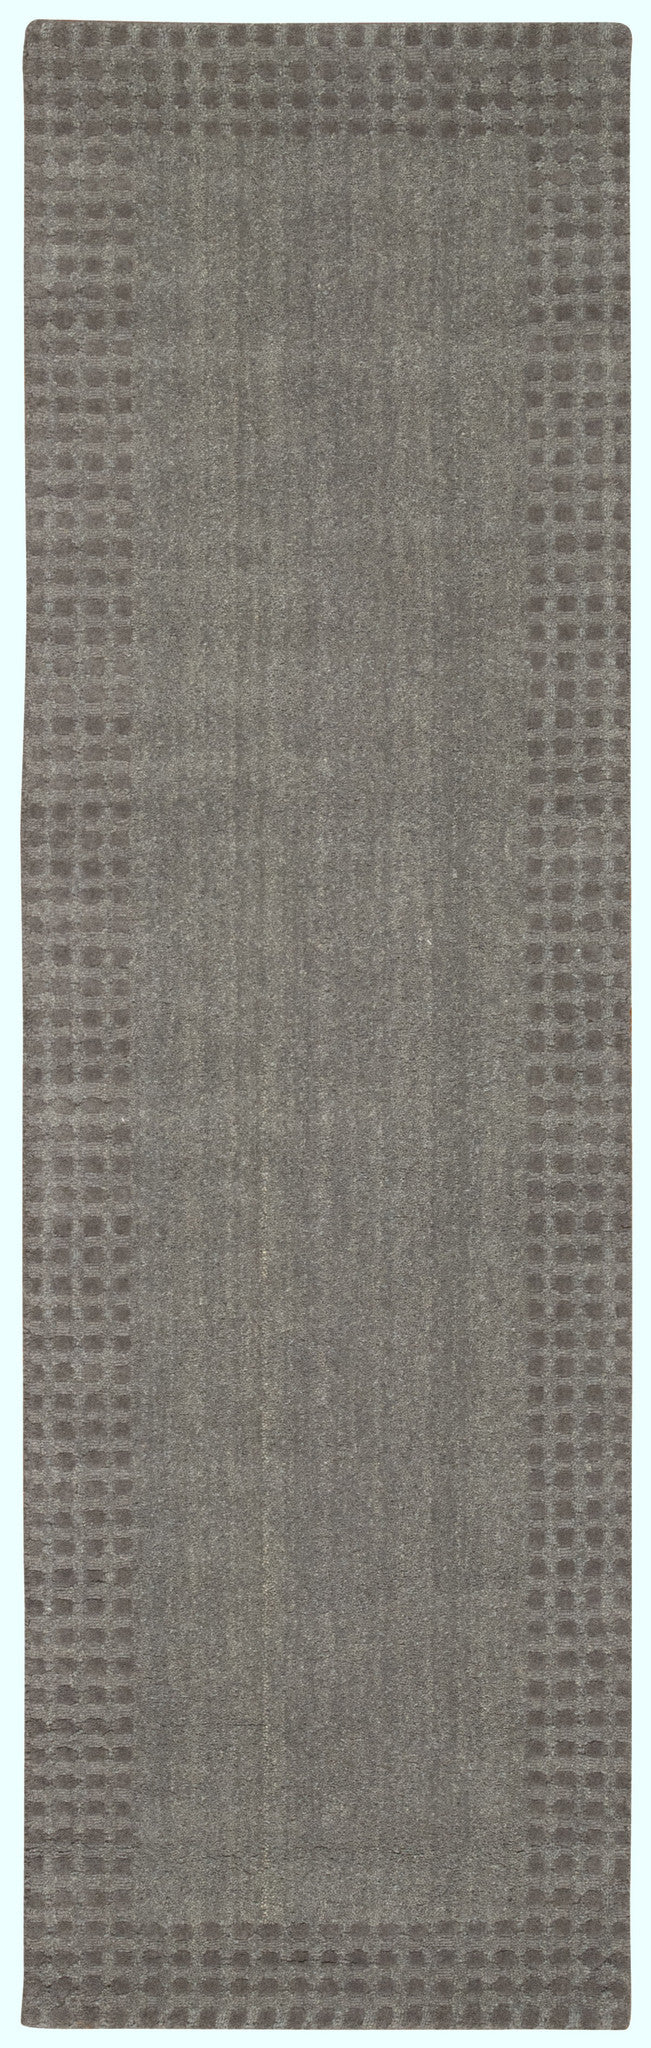 Kathy Ireland Cottage Grove Steel Area Rug By Nourison KI700 STEEL